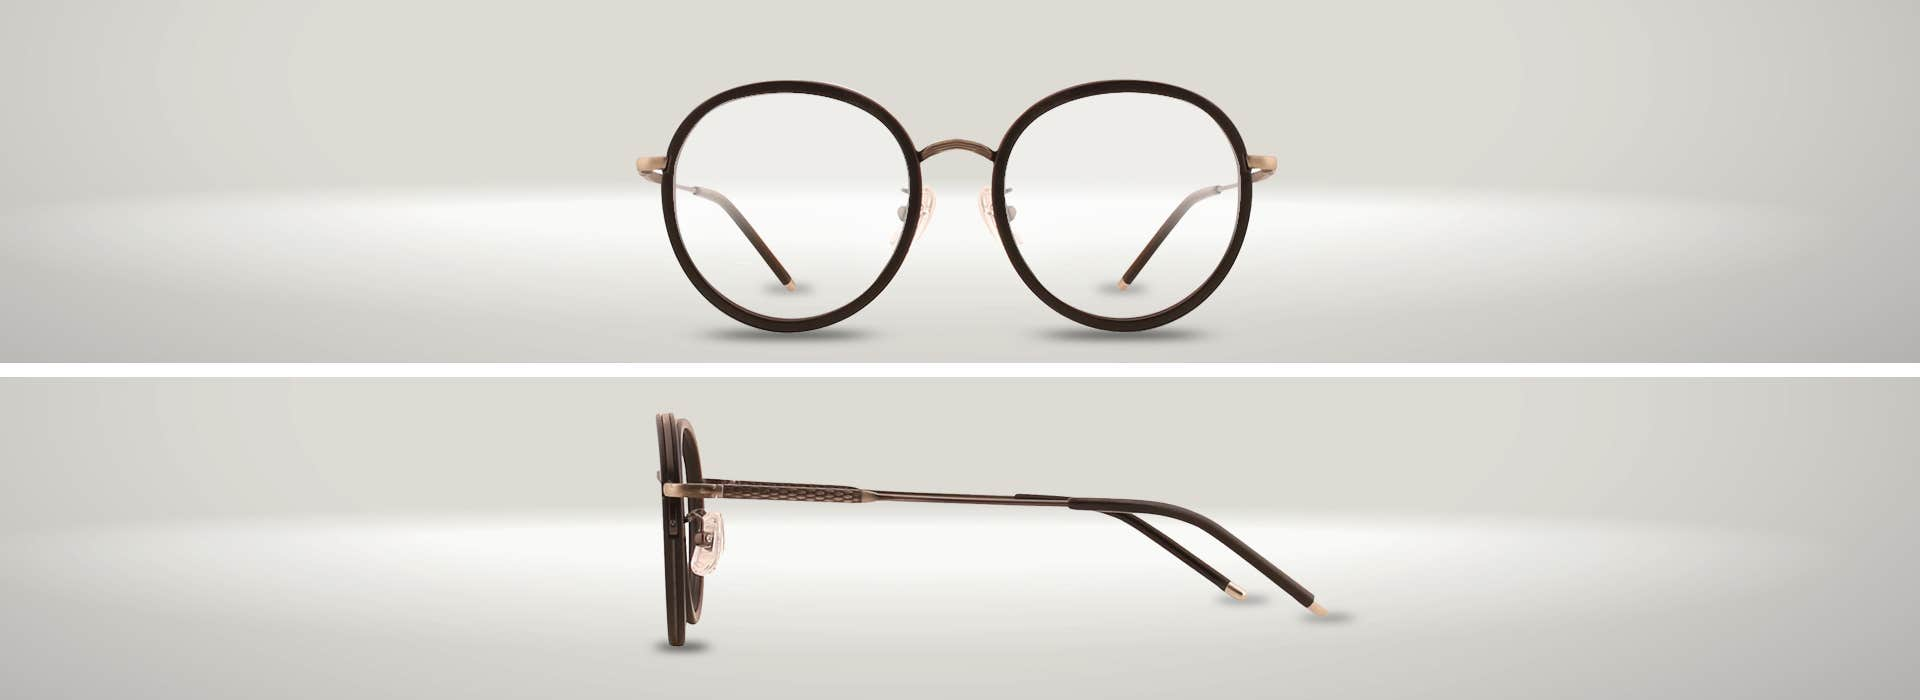 The 126334-C ROUND EYEGLASSES: